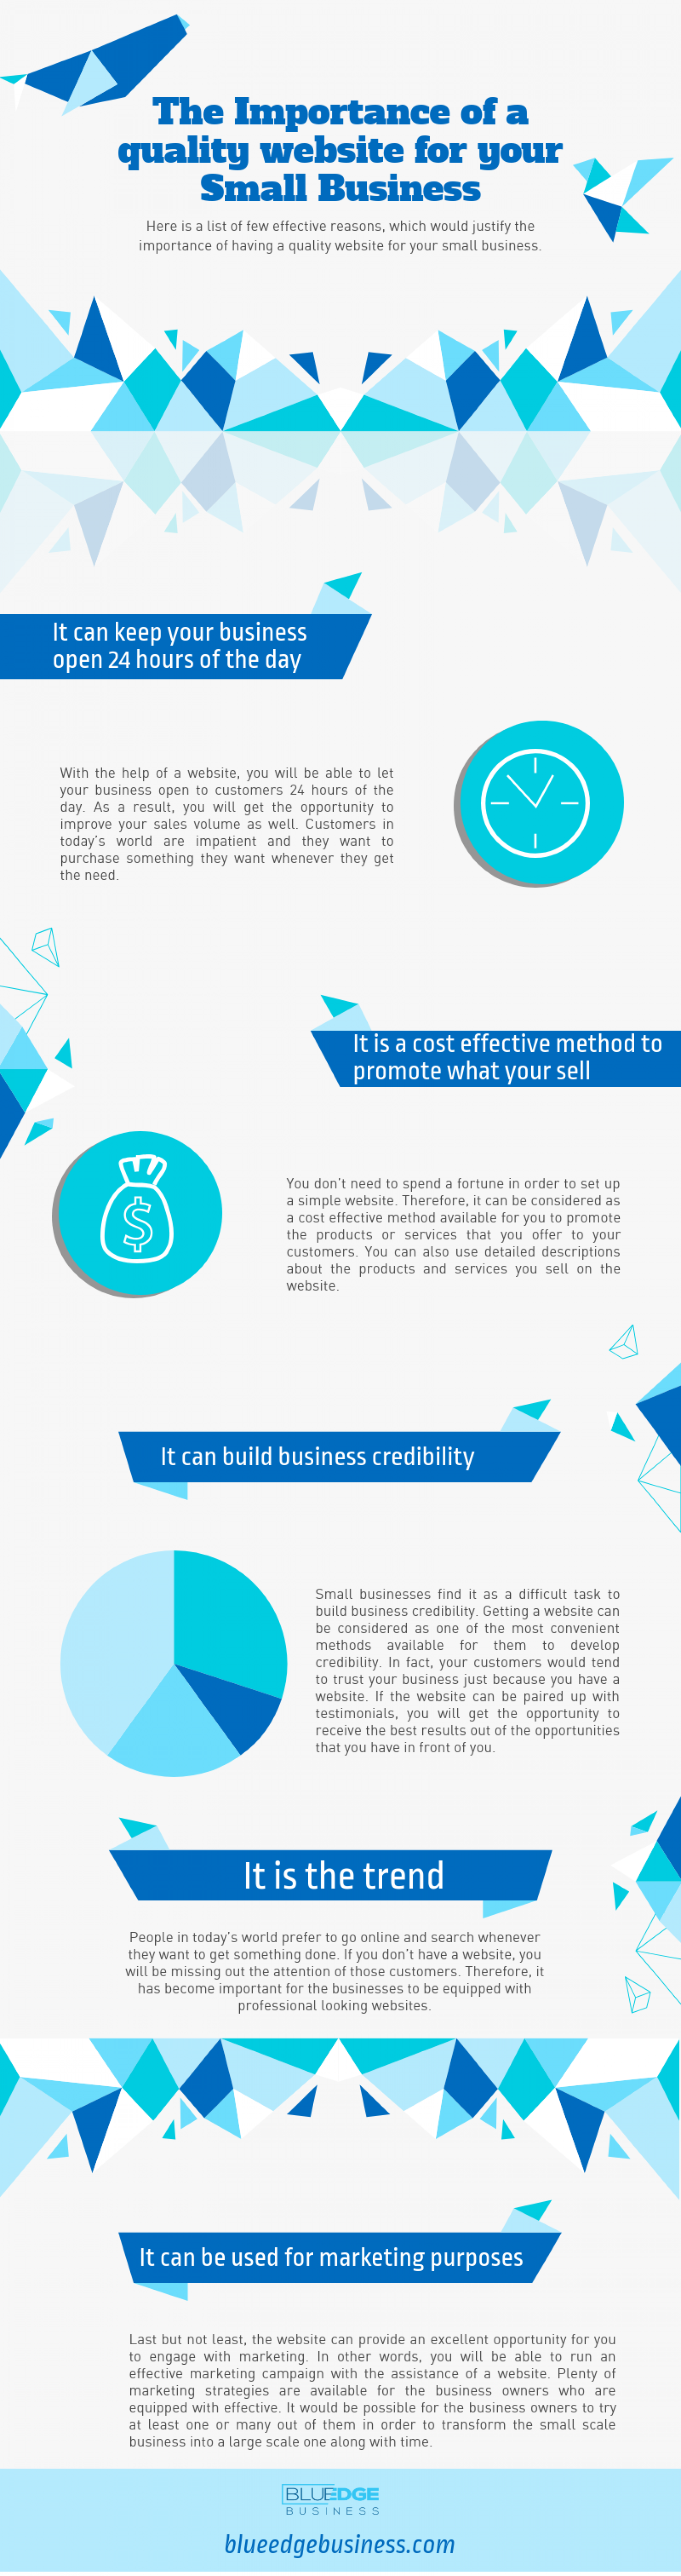 Importance of a Quality Website - Blue Edge Business